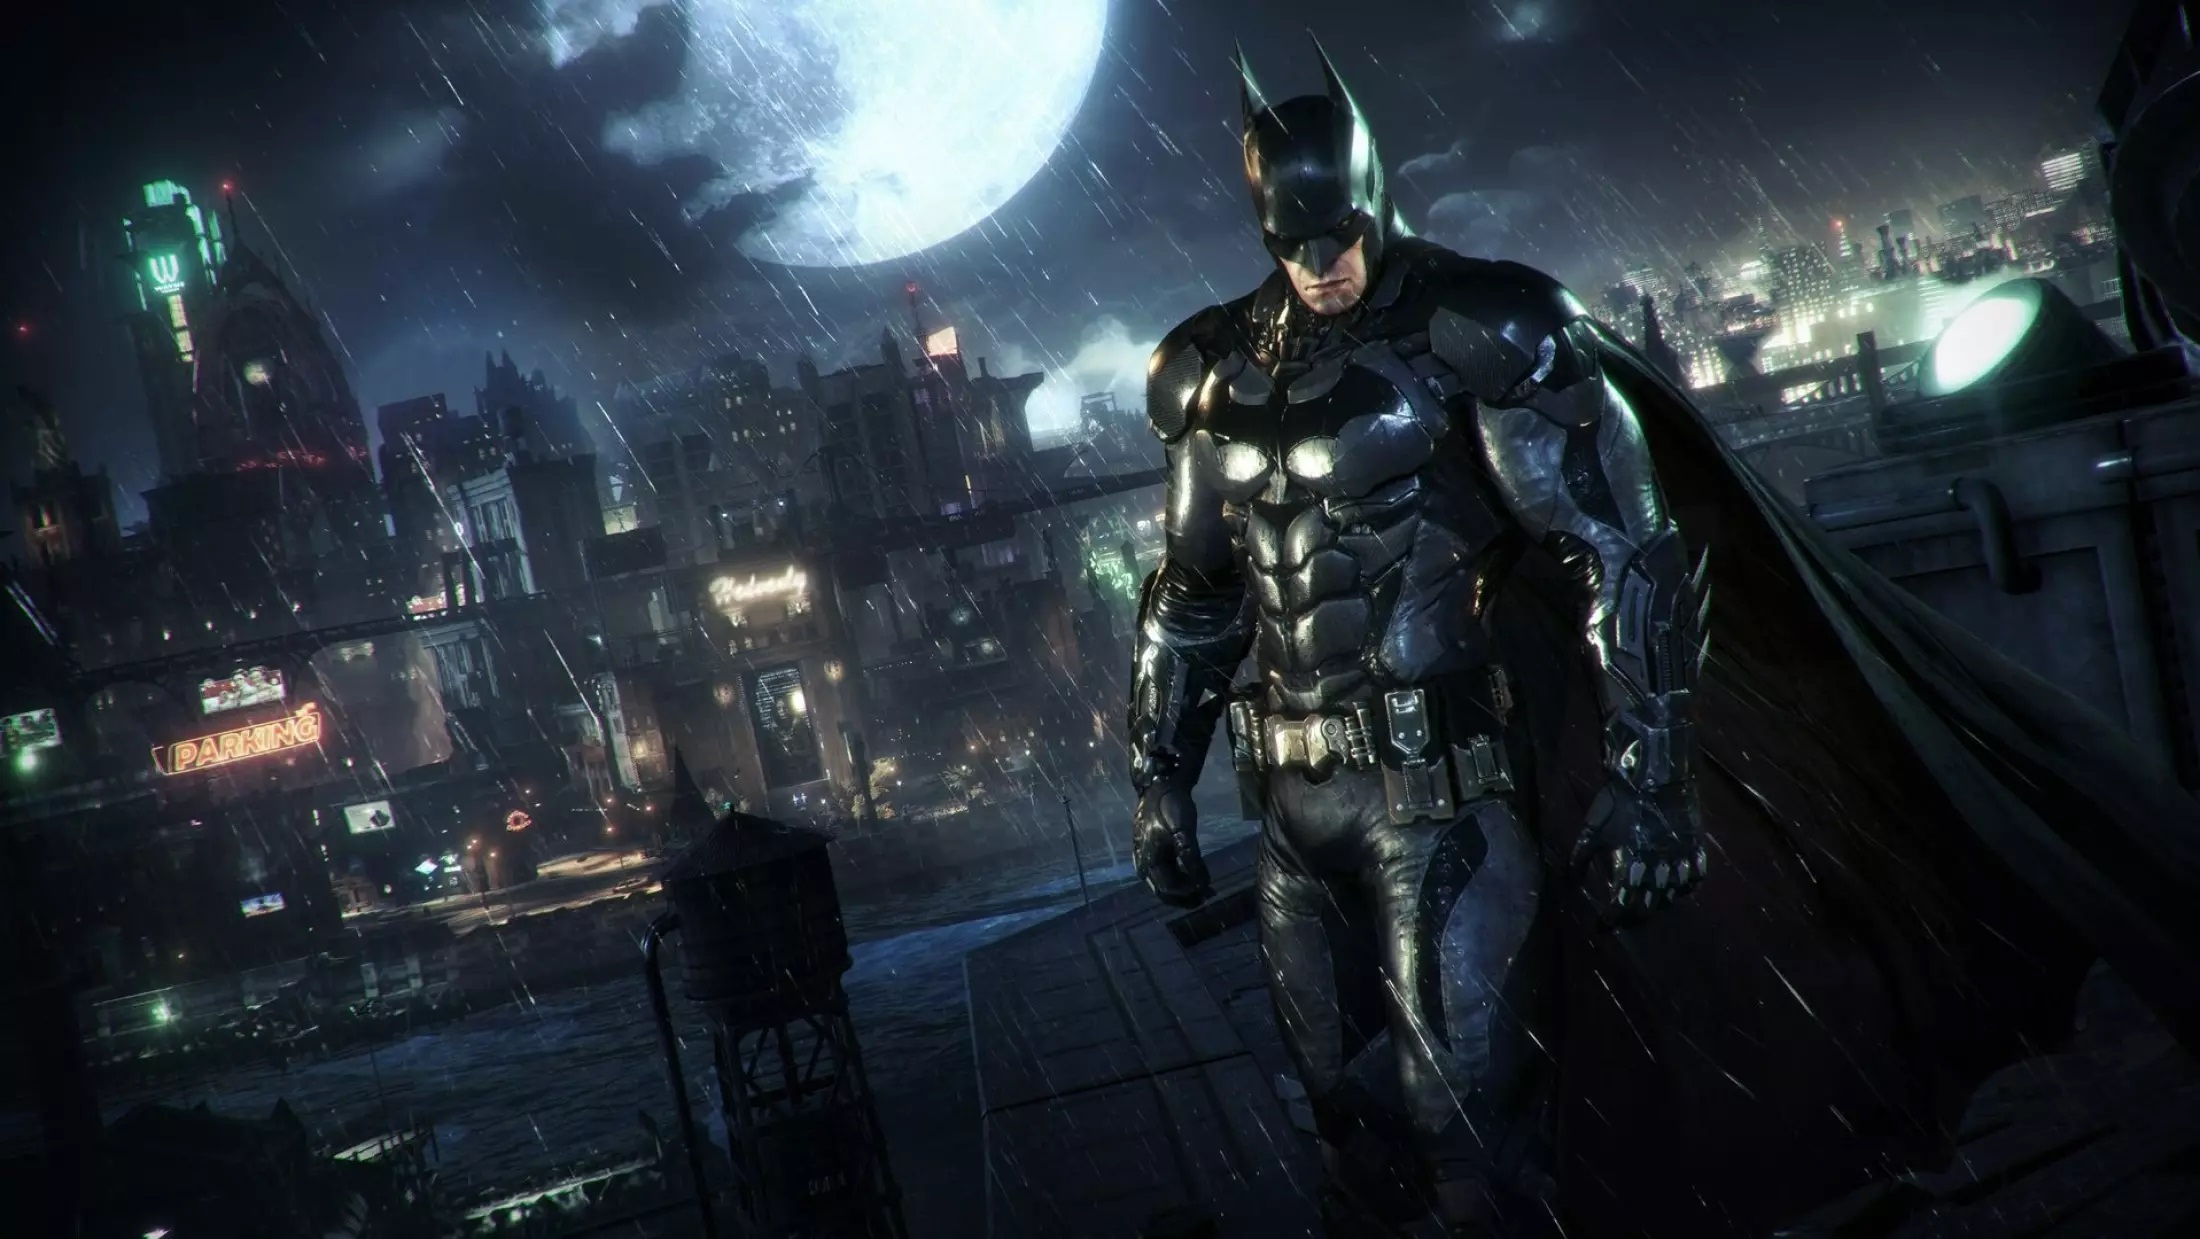 Microsoft is reportedly looking to acquire Warner Bros' gaming division